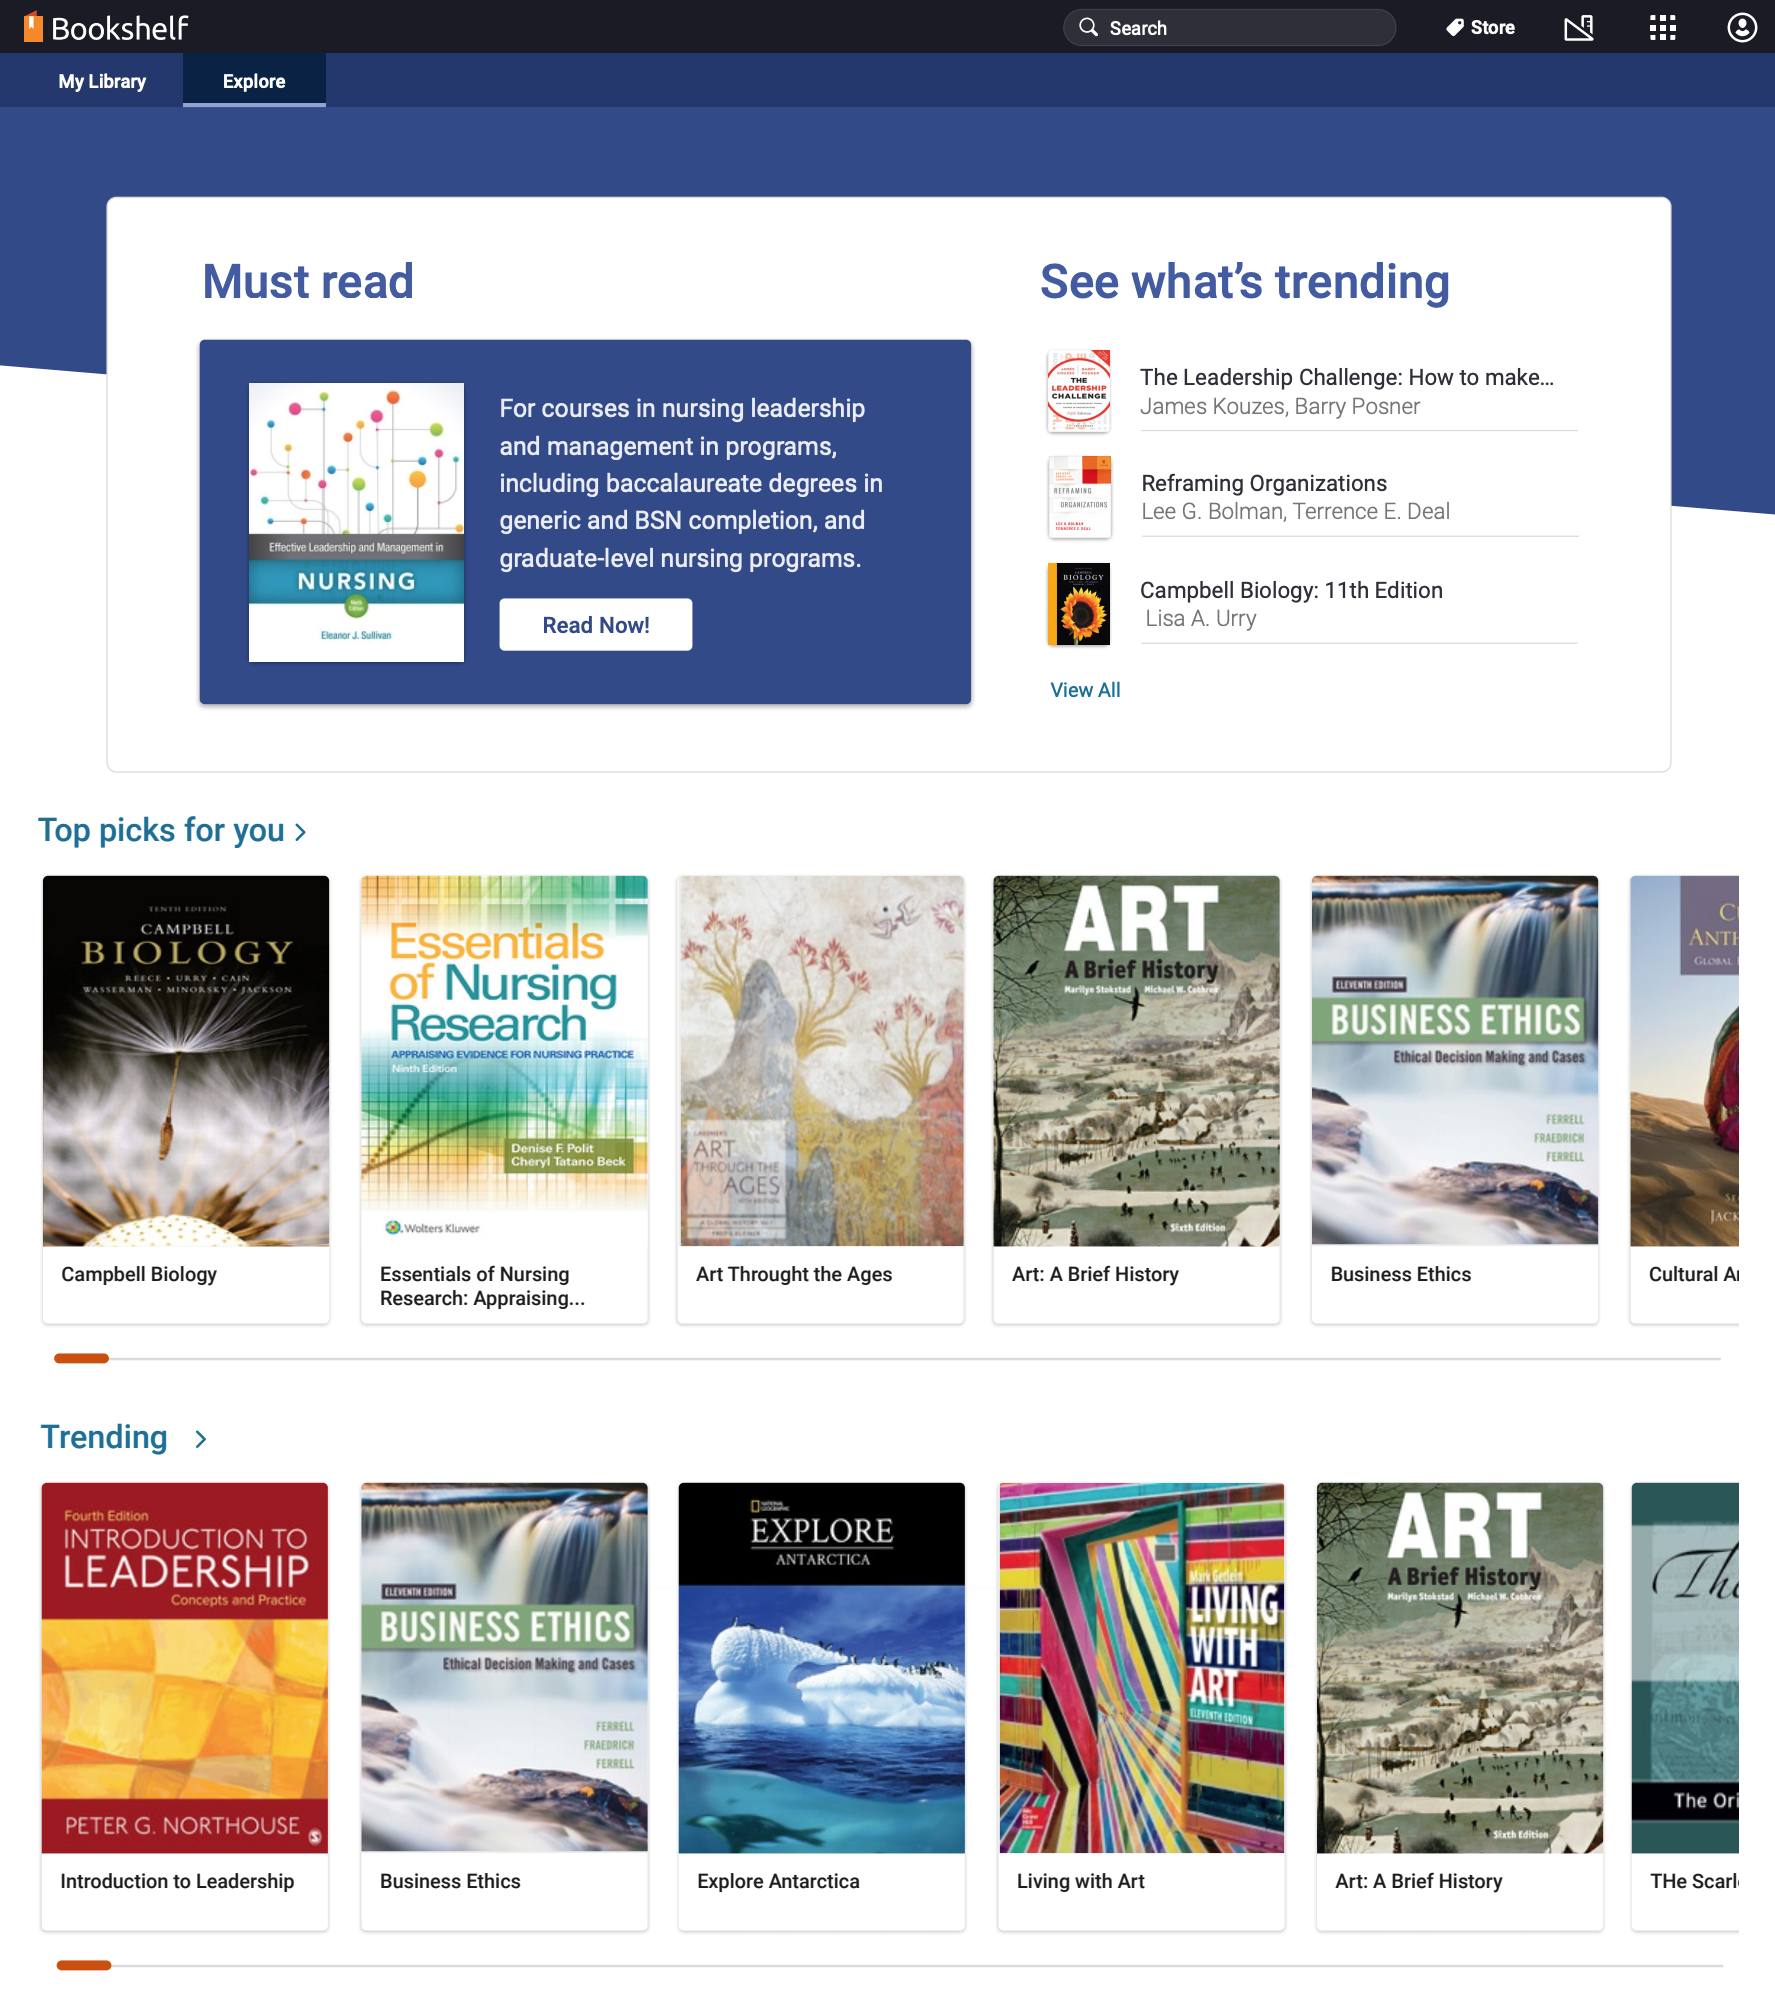 Image of Bookshelf homepage with Must Read. See what's trending, Top picks for you, and Trending sections.